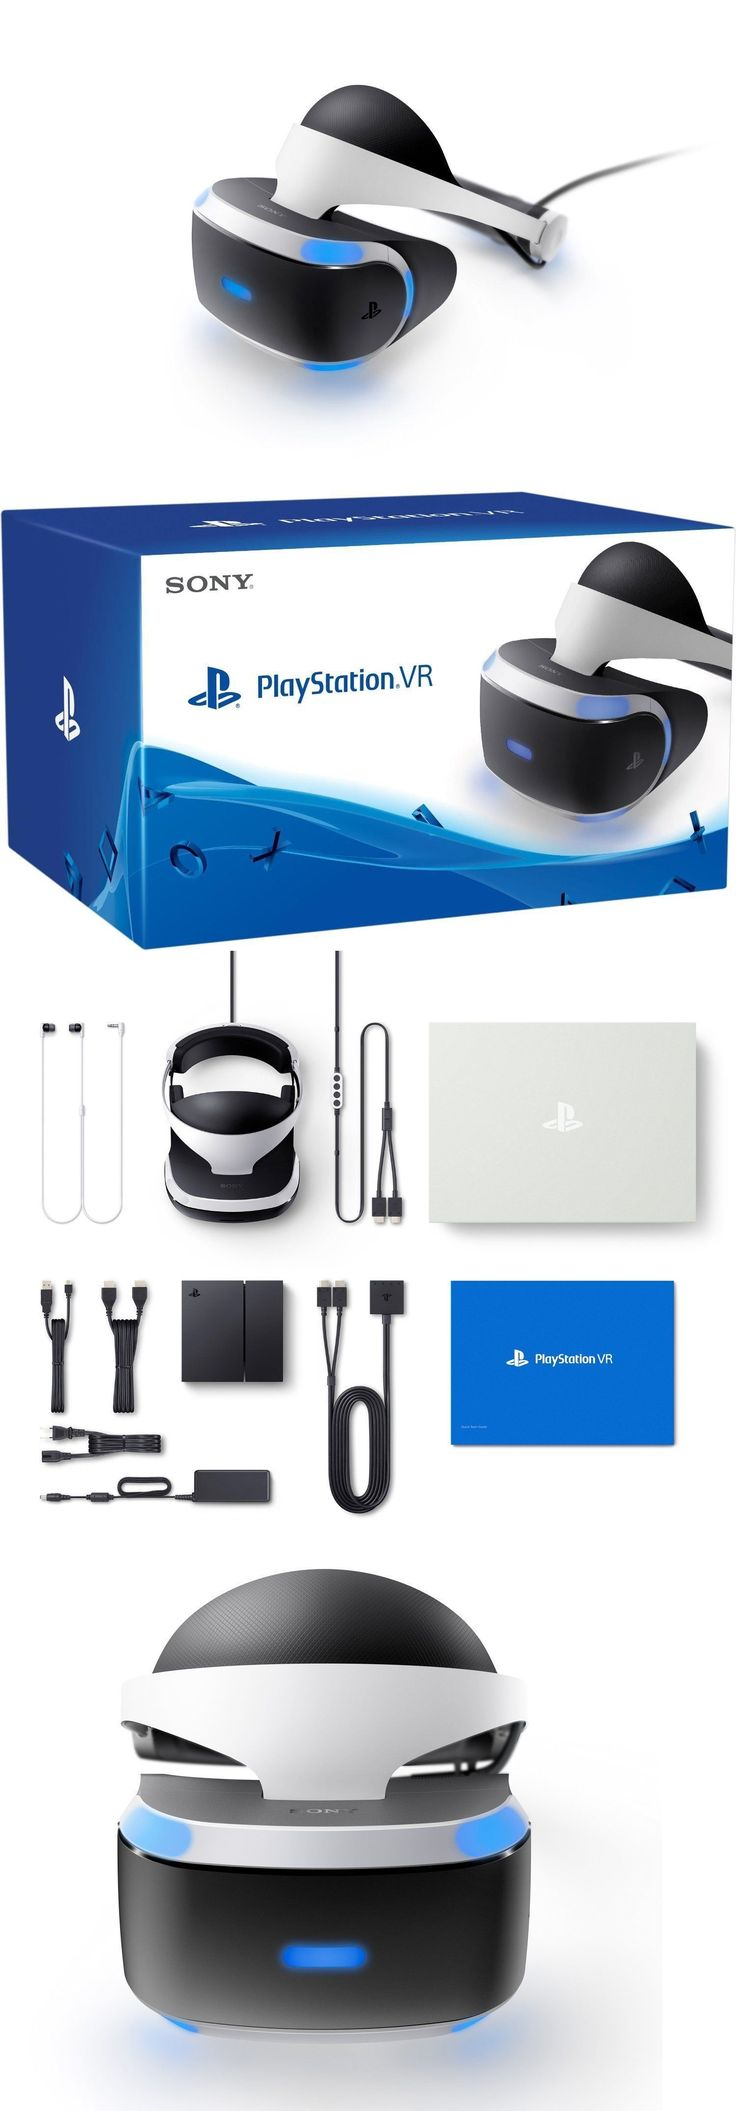 PC and Console VR Headsets: Brand New Sony Playstation Vr Headset Ps4 Virtual Reality Psvr Realistic Gaming -> BUY IT NOW ONLY: $315.99 on eBay!